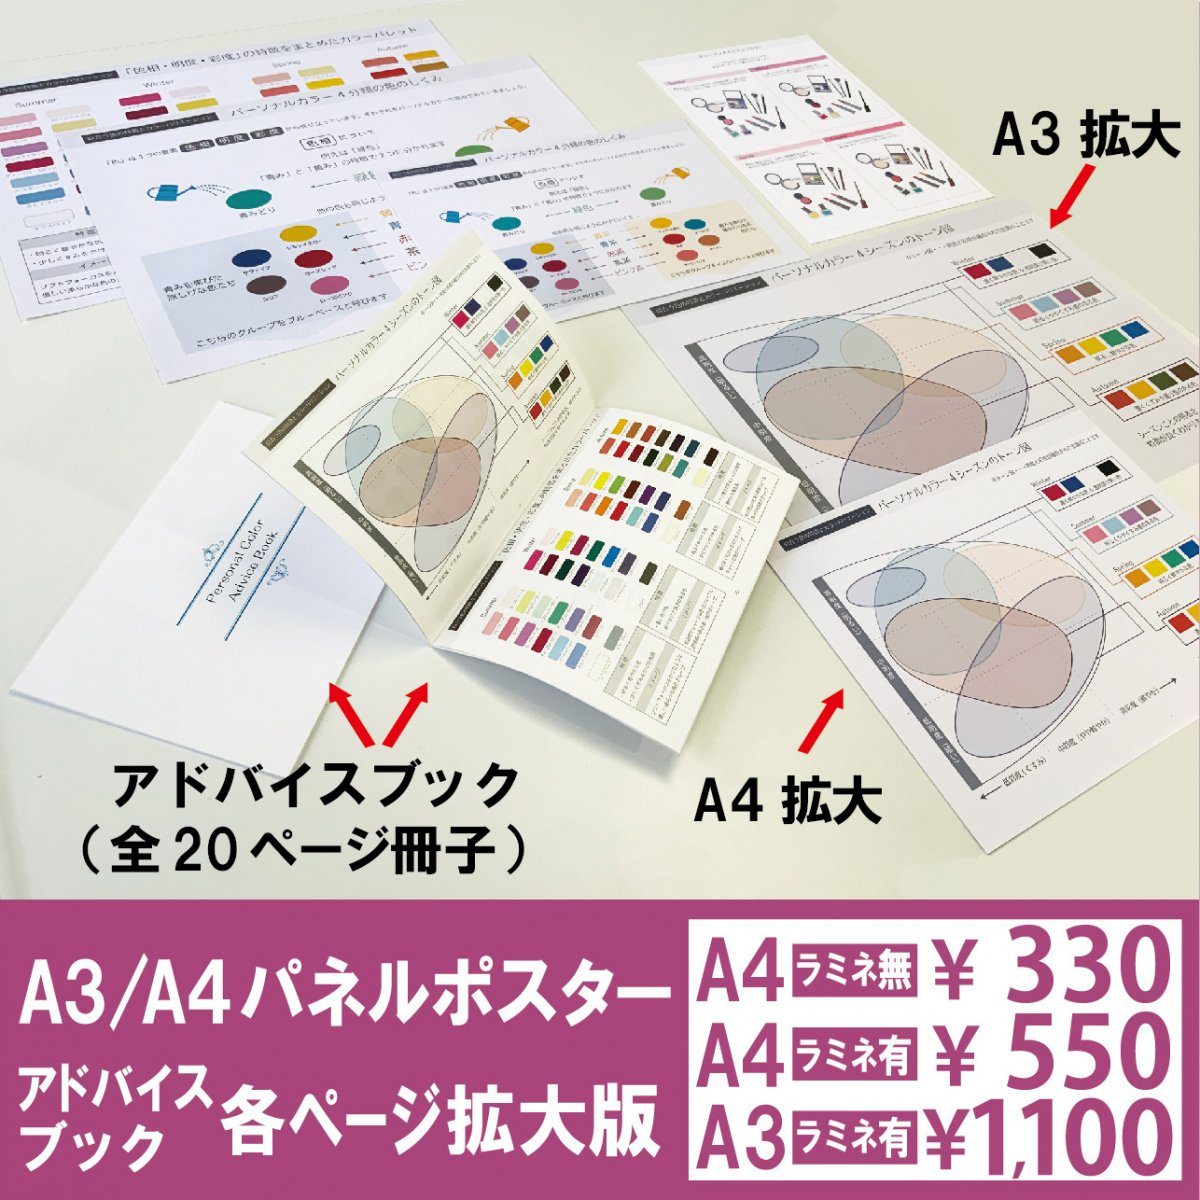 A4/A3パネルポスター・アドバイスブック各ページ拡大版<img class='new_mark_img2' src='https://img.shop-pro.jp/img/new/icons1.gif' style='border:none;display:inline;margin:0px;padding:0px;width:auto;' />